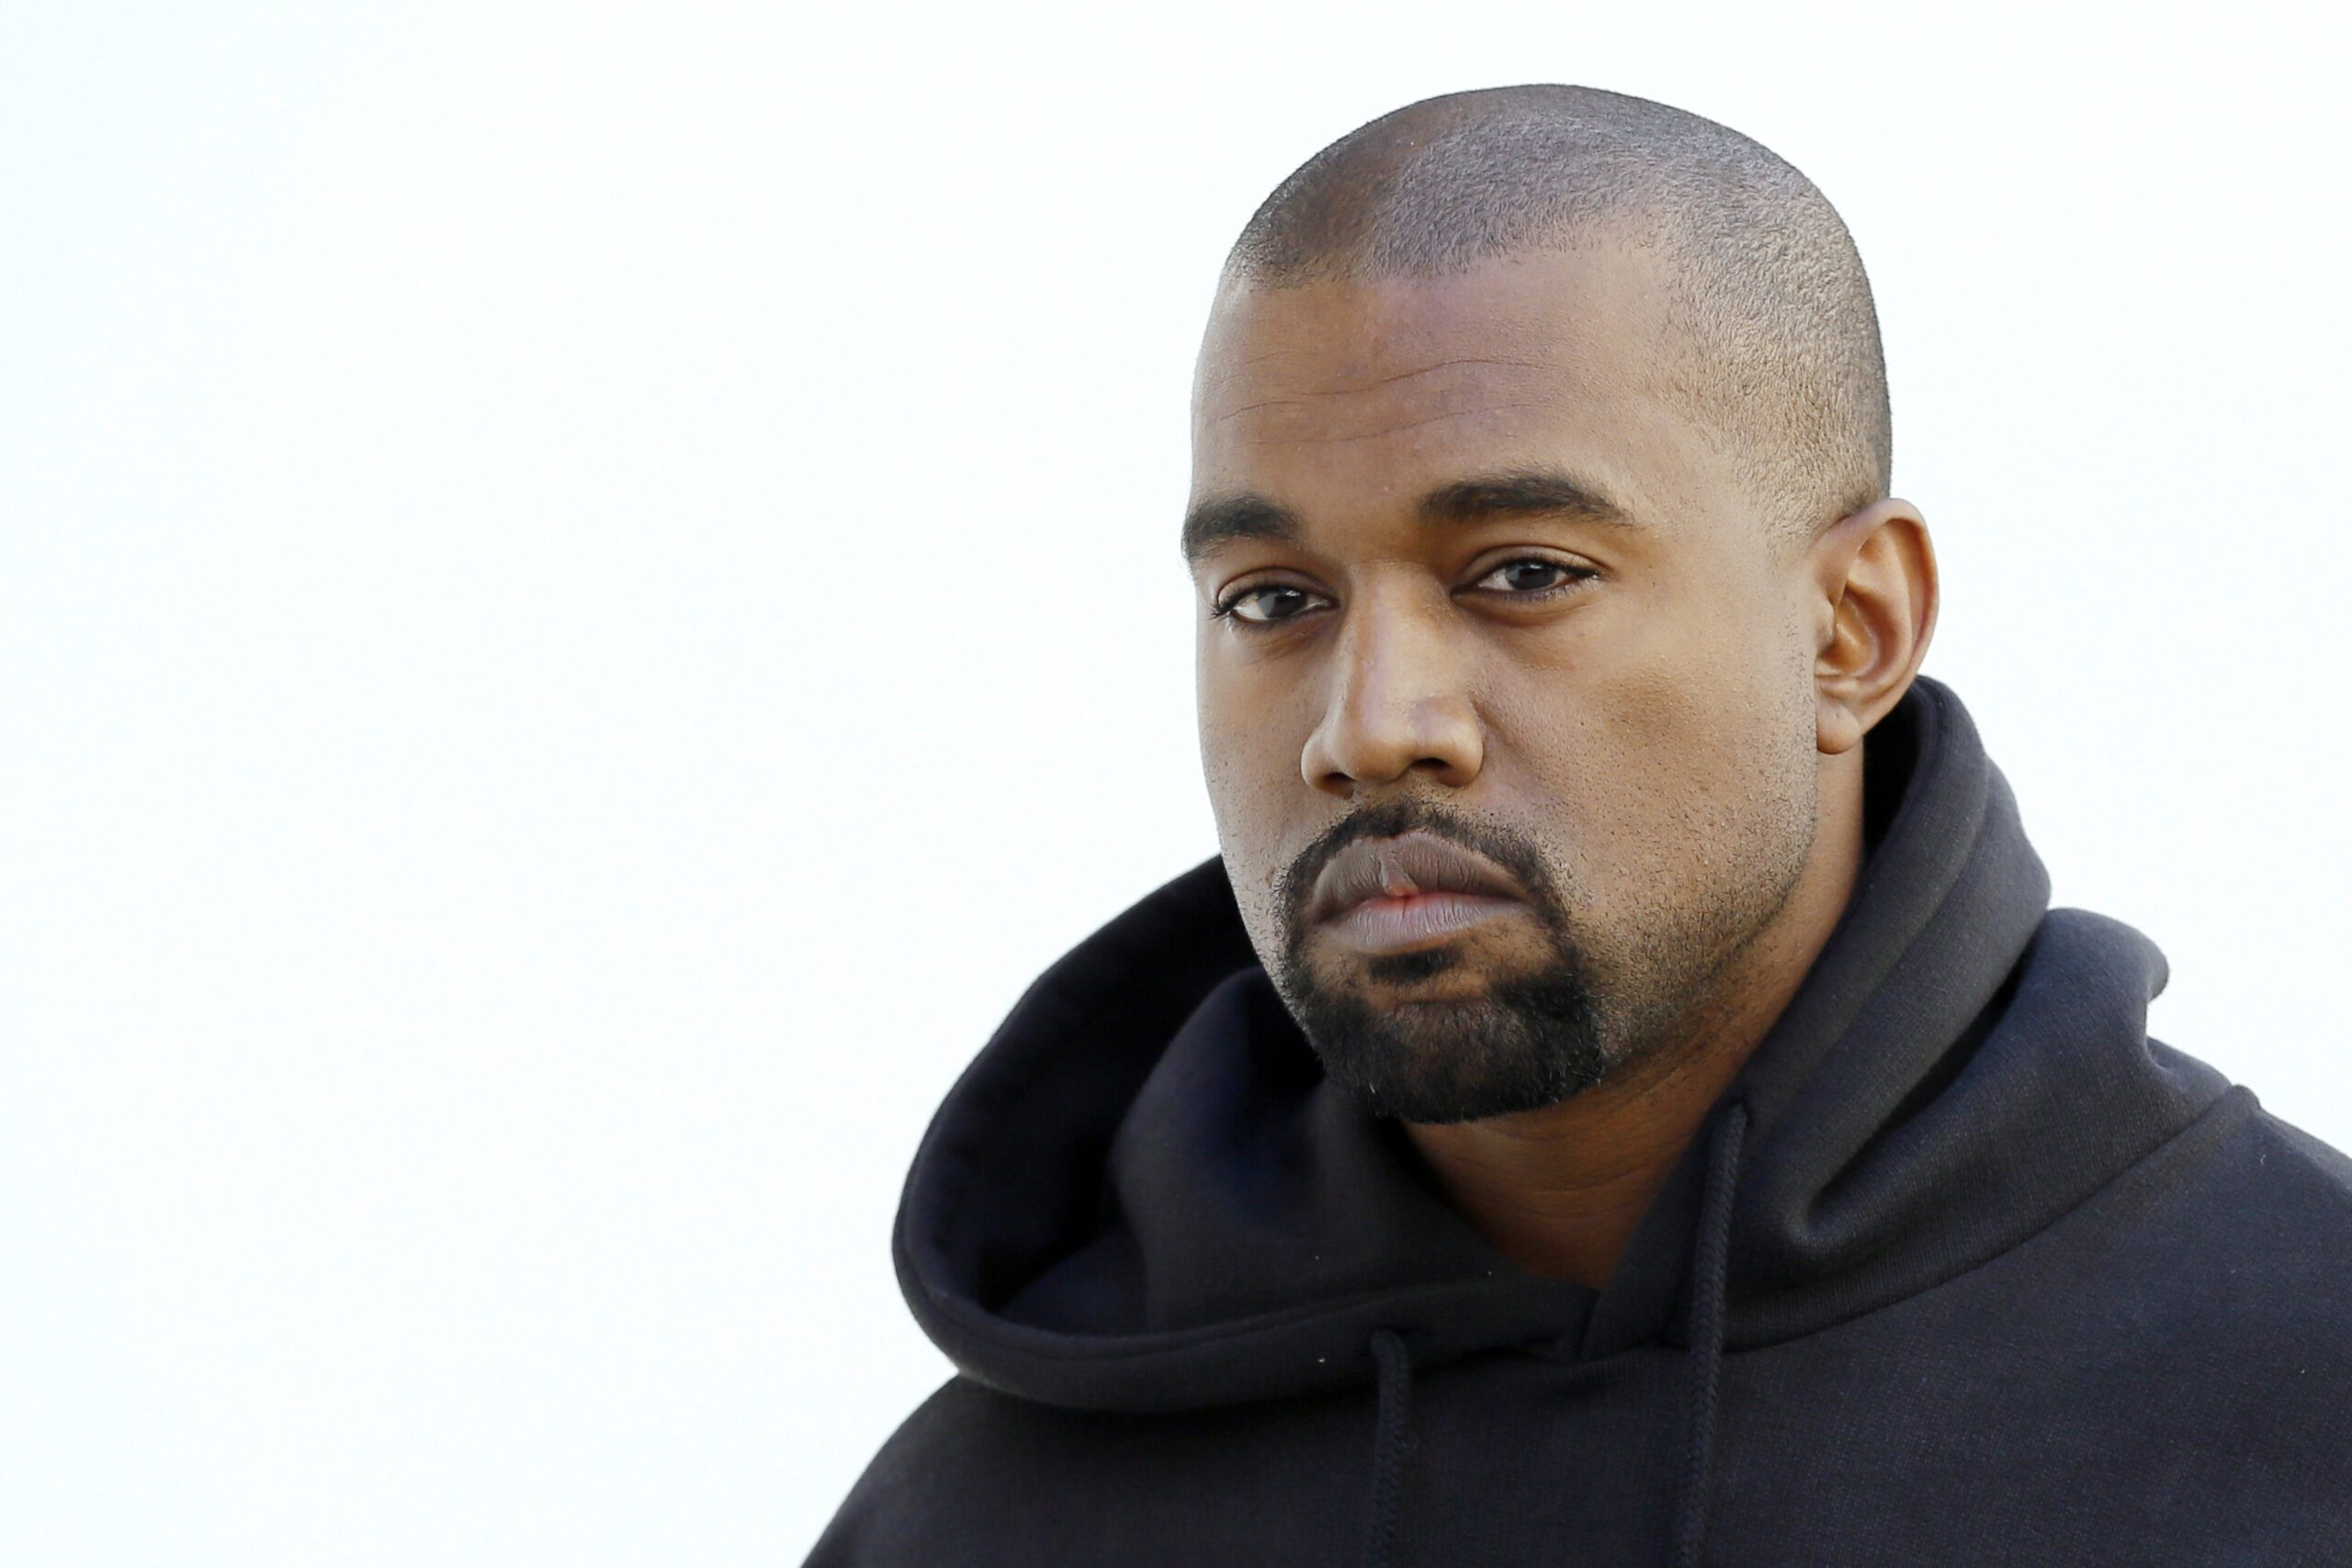 Kanye tweets he's running for president